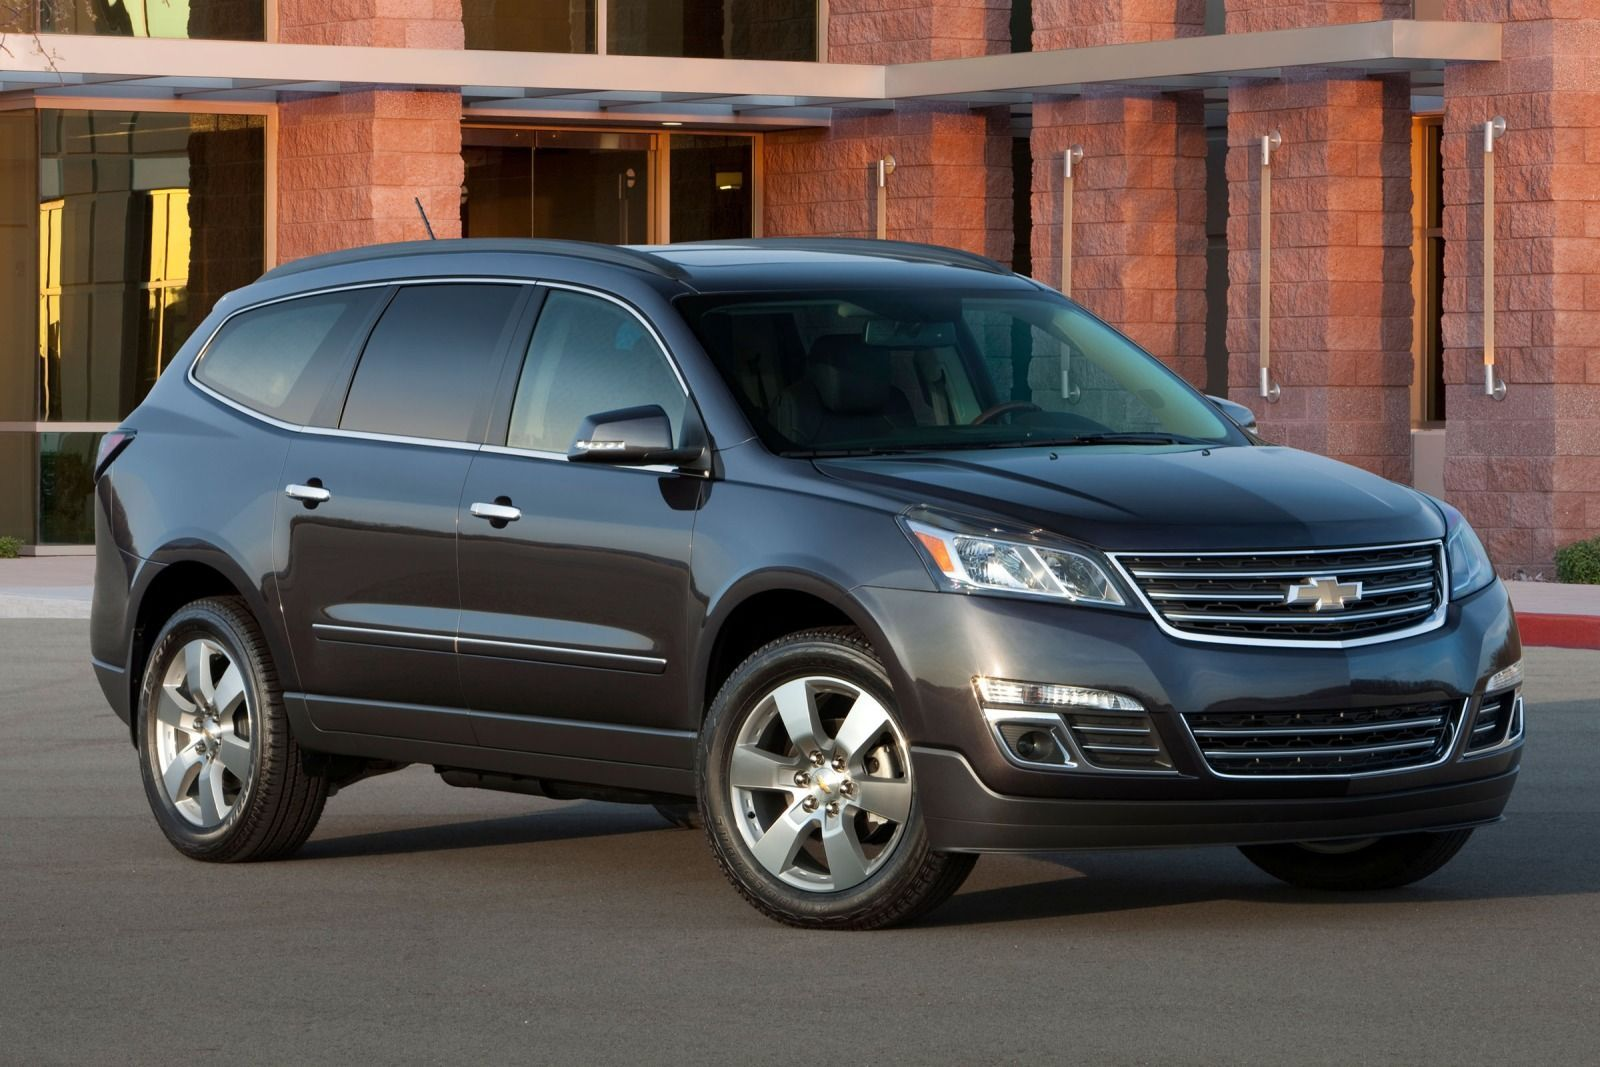 Chevrolet Suv 2015 >> The 2015 Chevrolet Traverse Awd Ls Is A New Suv You Can